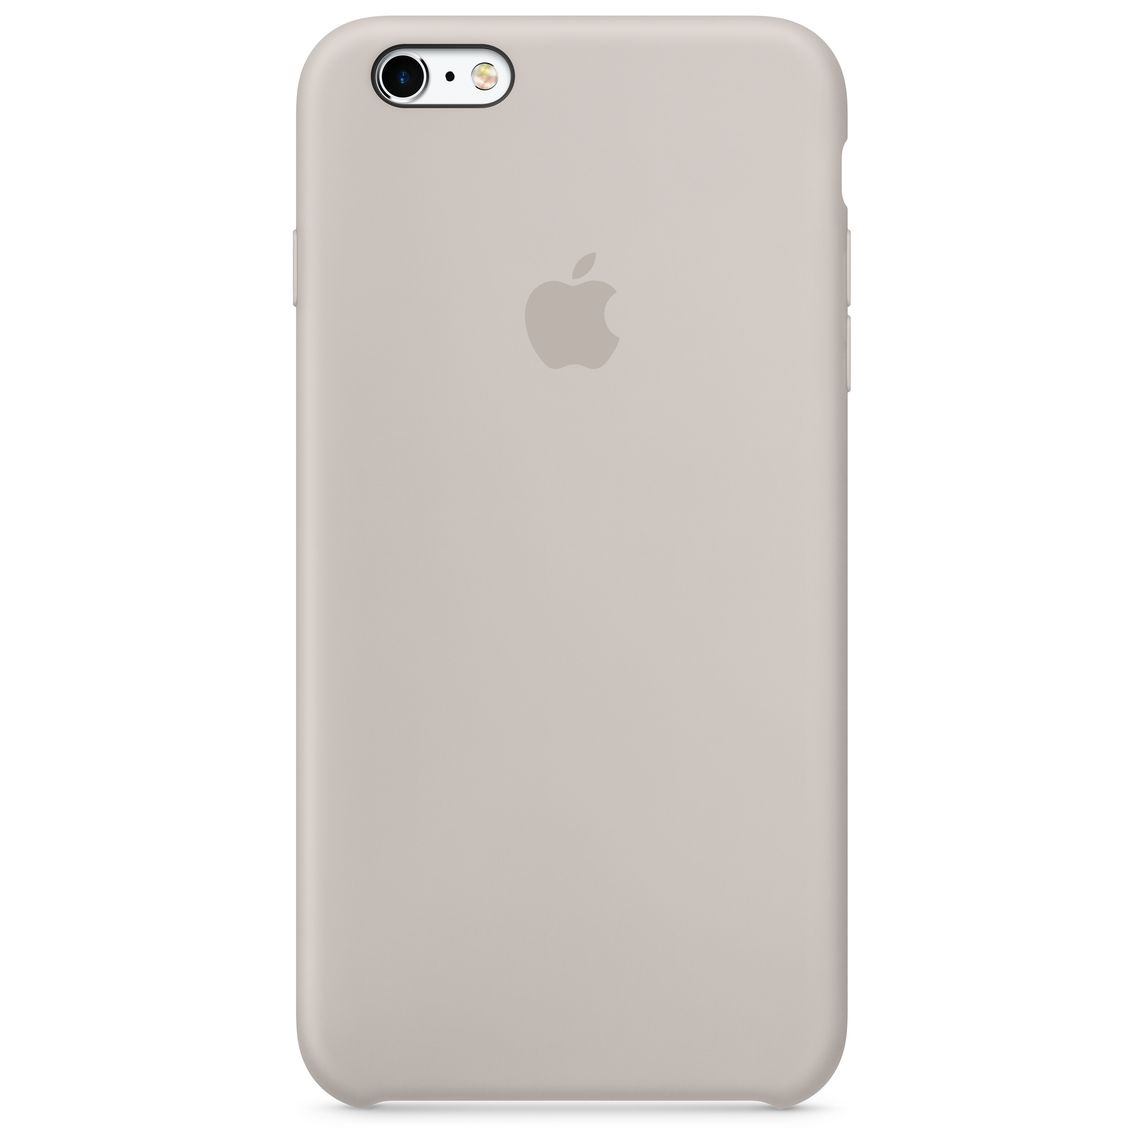 timeless design 8ff22 7962f iPhone 6 Plus / 6s Plus Silicone Case - Stone